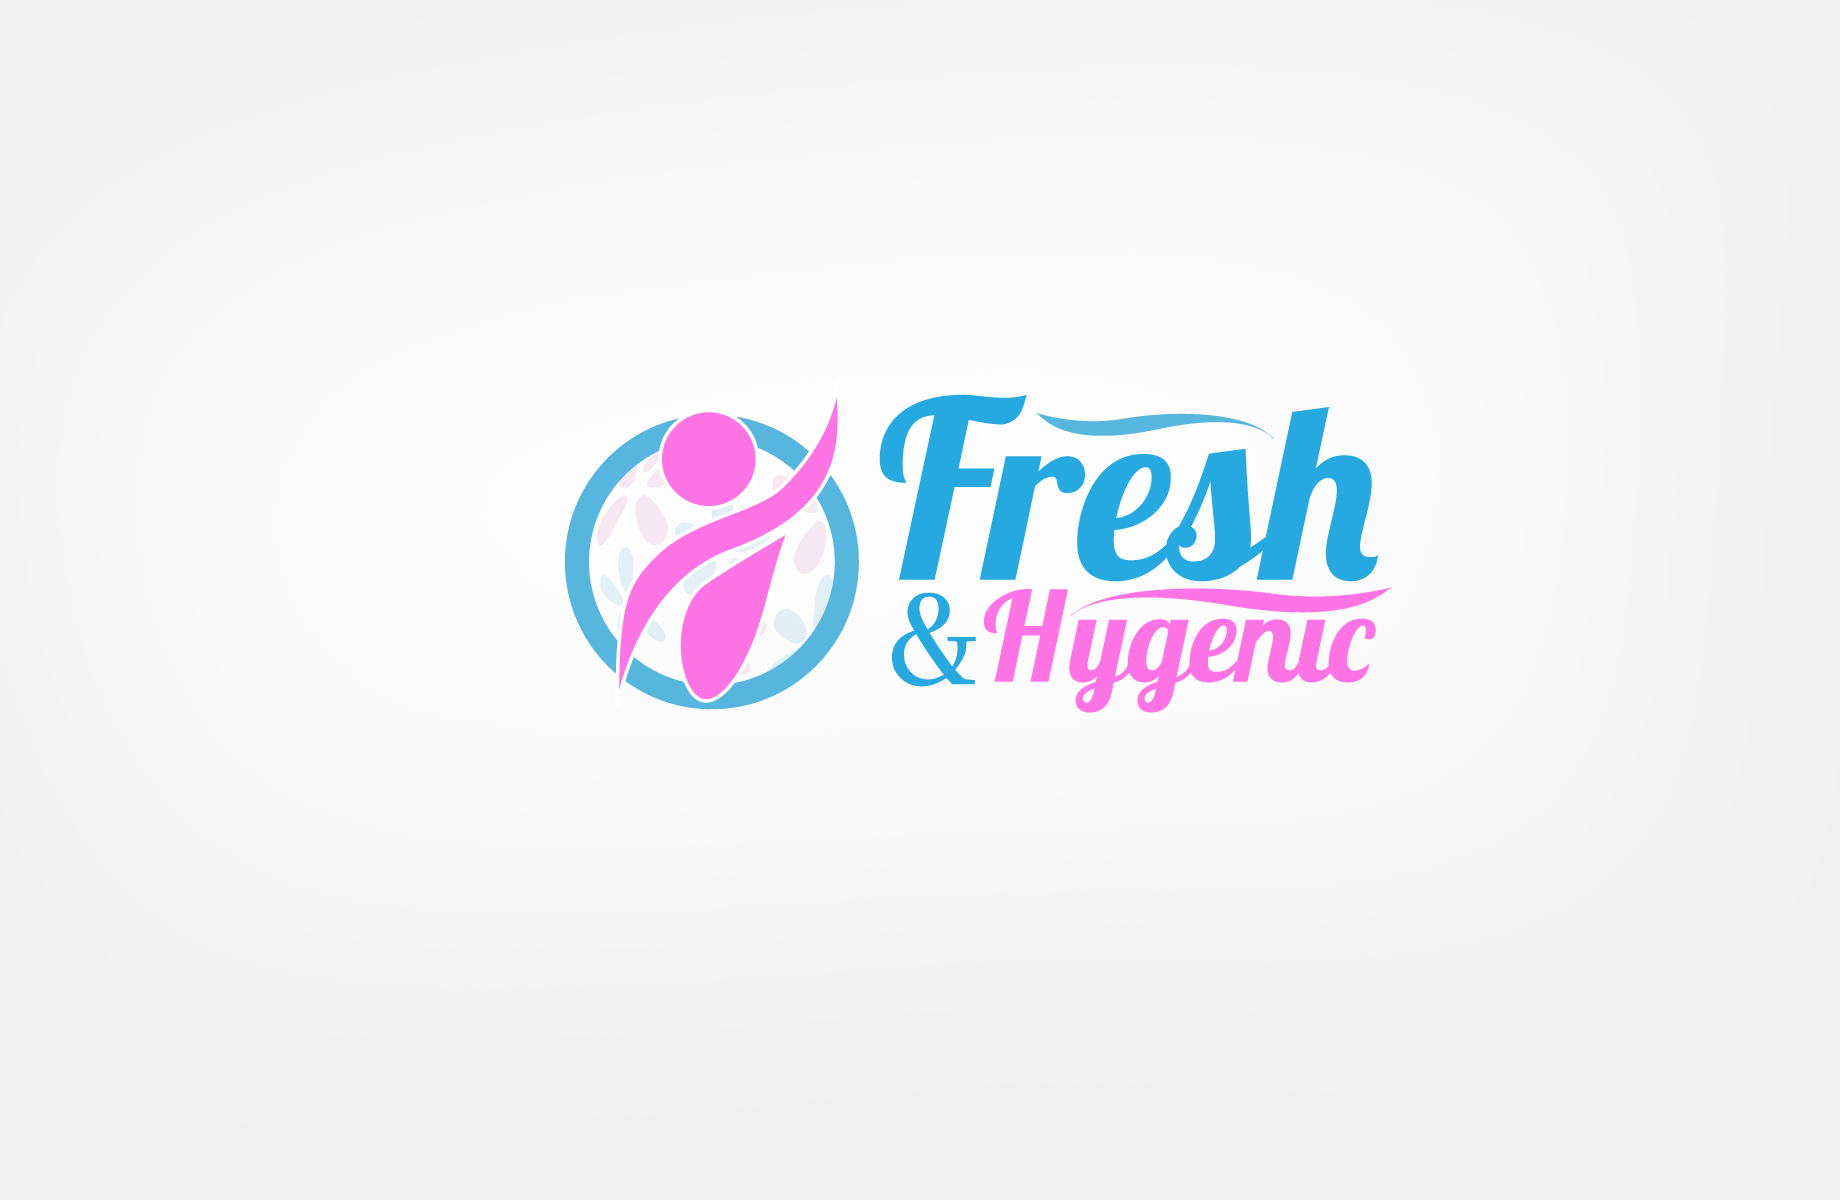 Logo Design by Jan Chua - Entry No. 54 in the Logo Design Contest Fun Logo Design for Fresh & Hygenic.